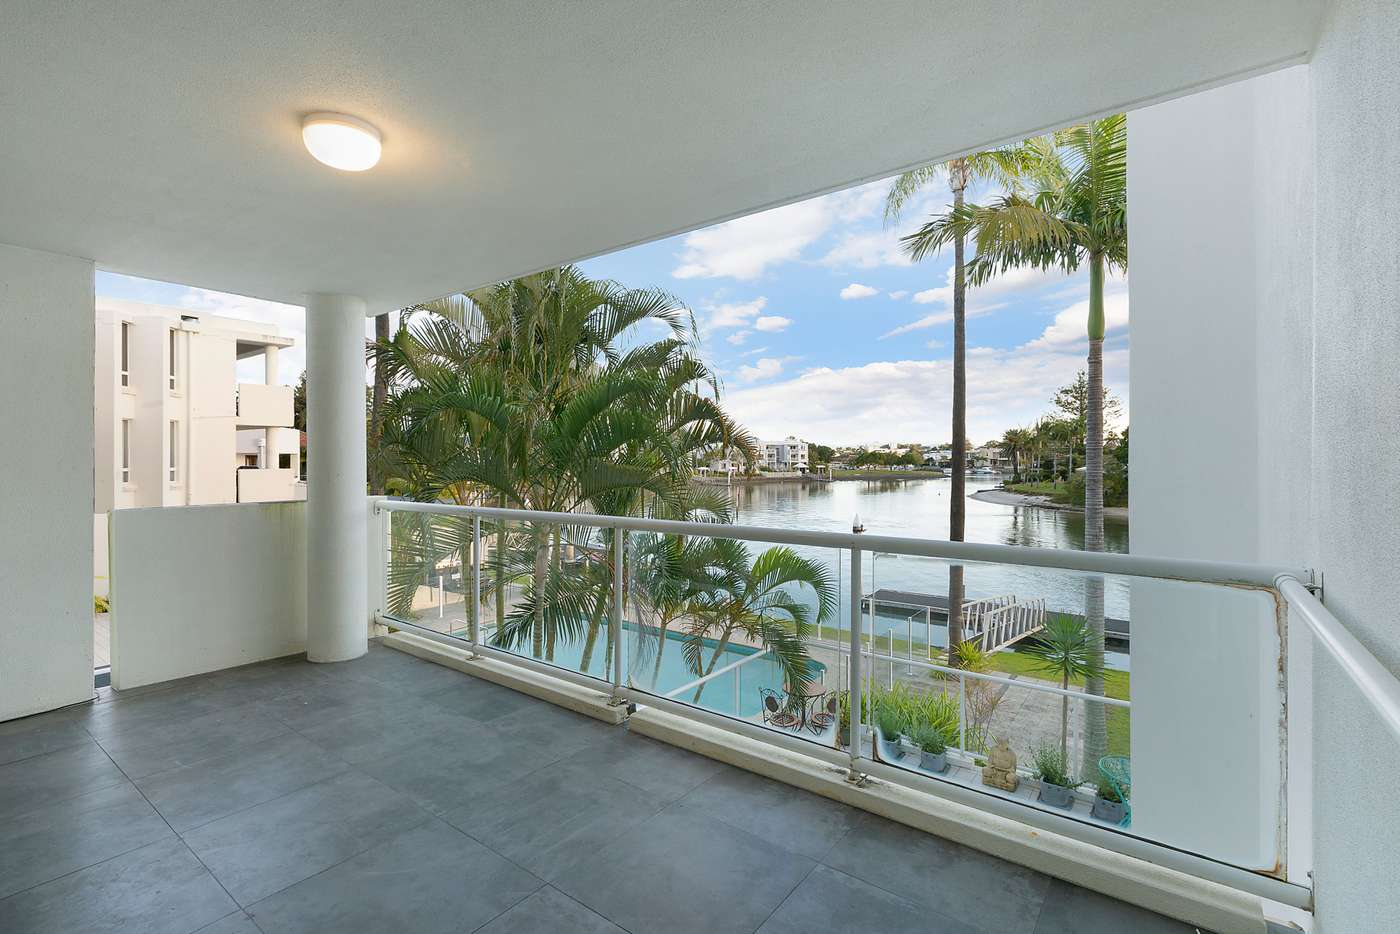 Main view of Homely unit listing, 11/52 Back Street, Biggera Waters QLD 4216